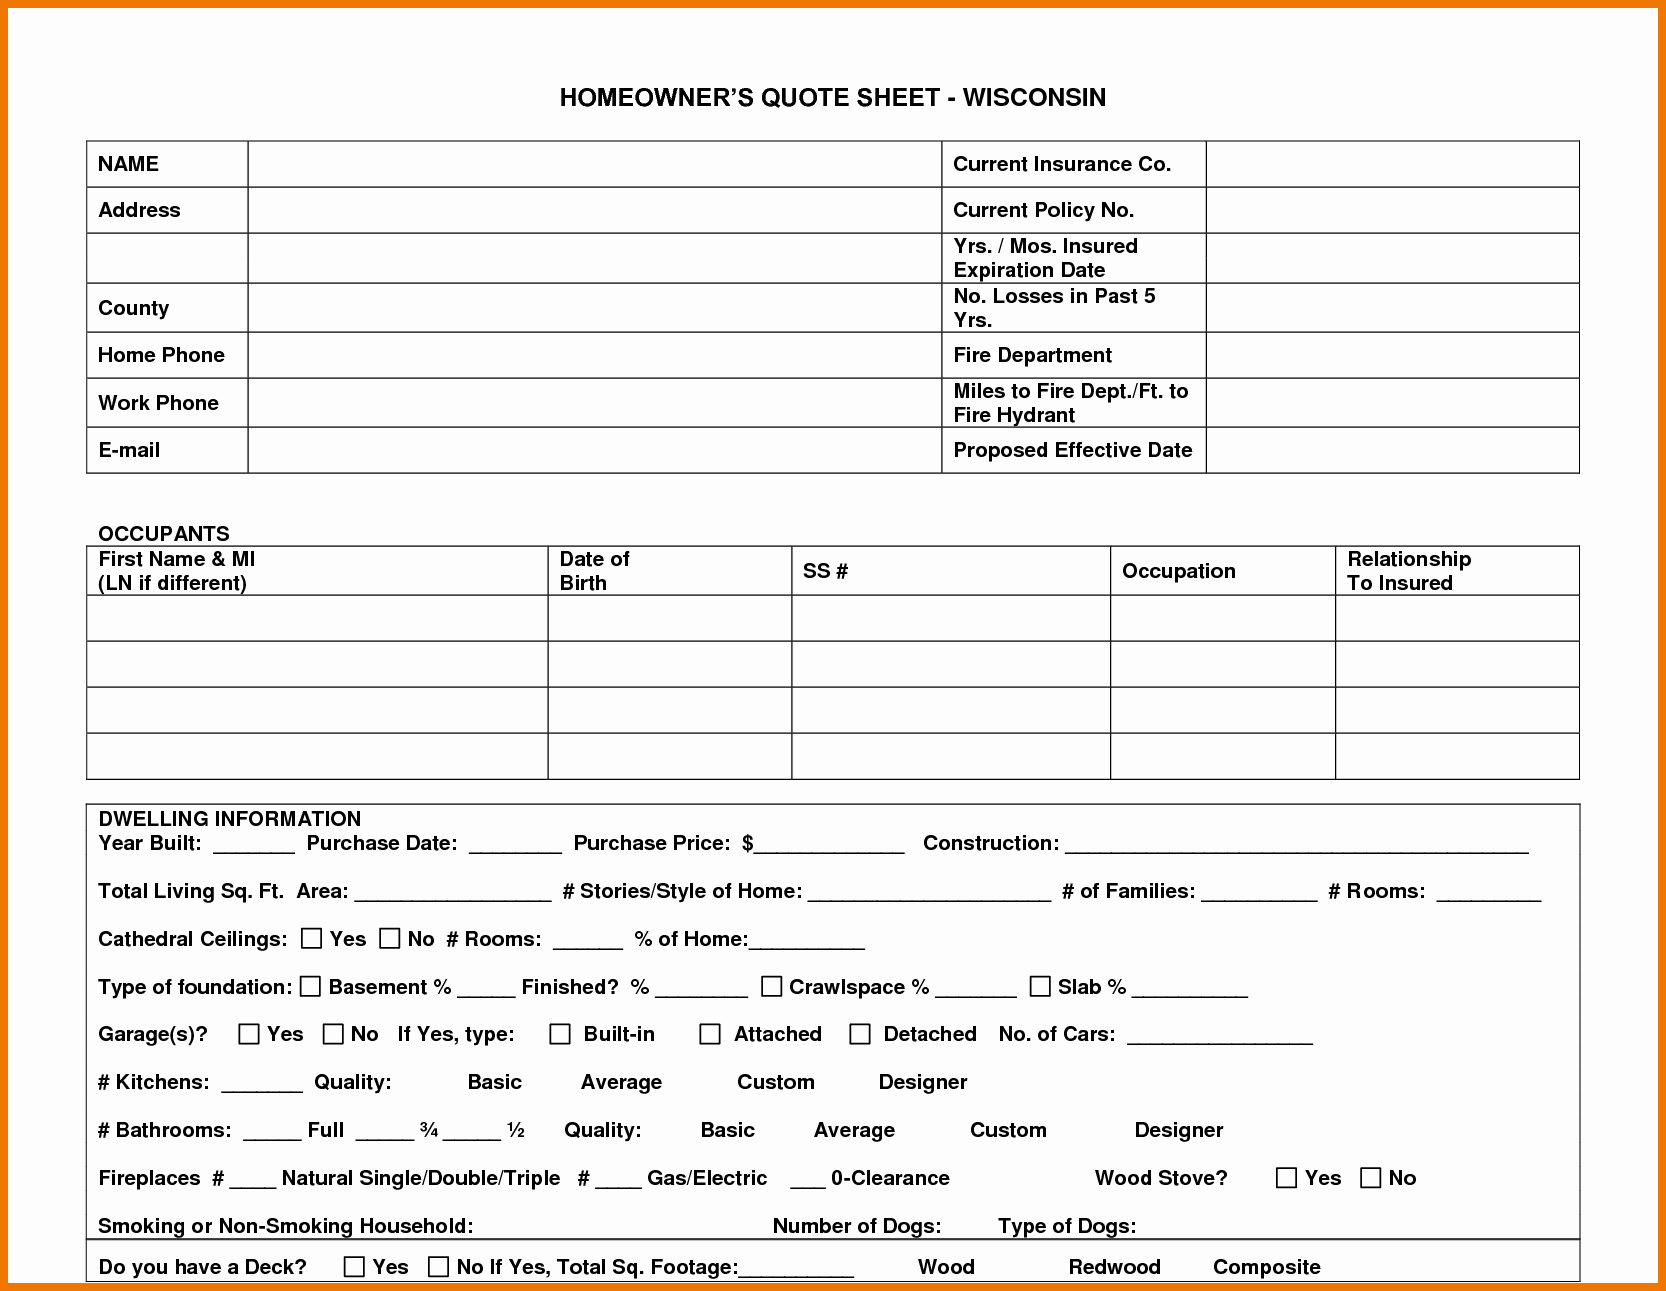 Home Insurance Quote Sheet New Home Insurance Quote Sheet Template 22